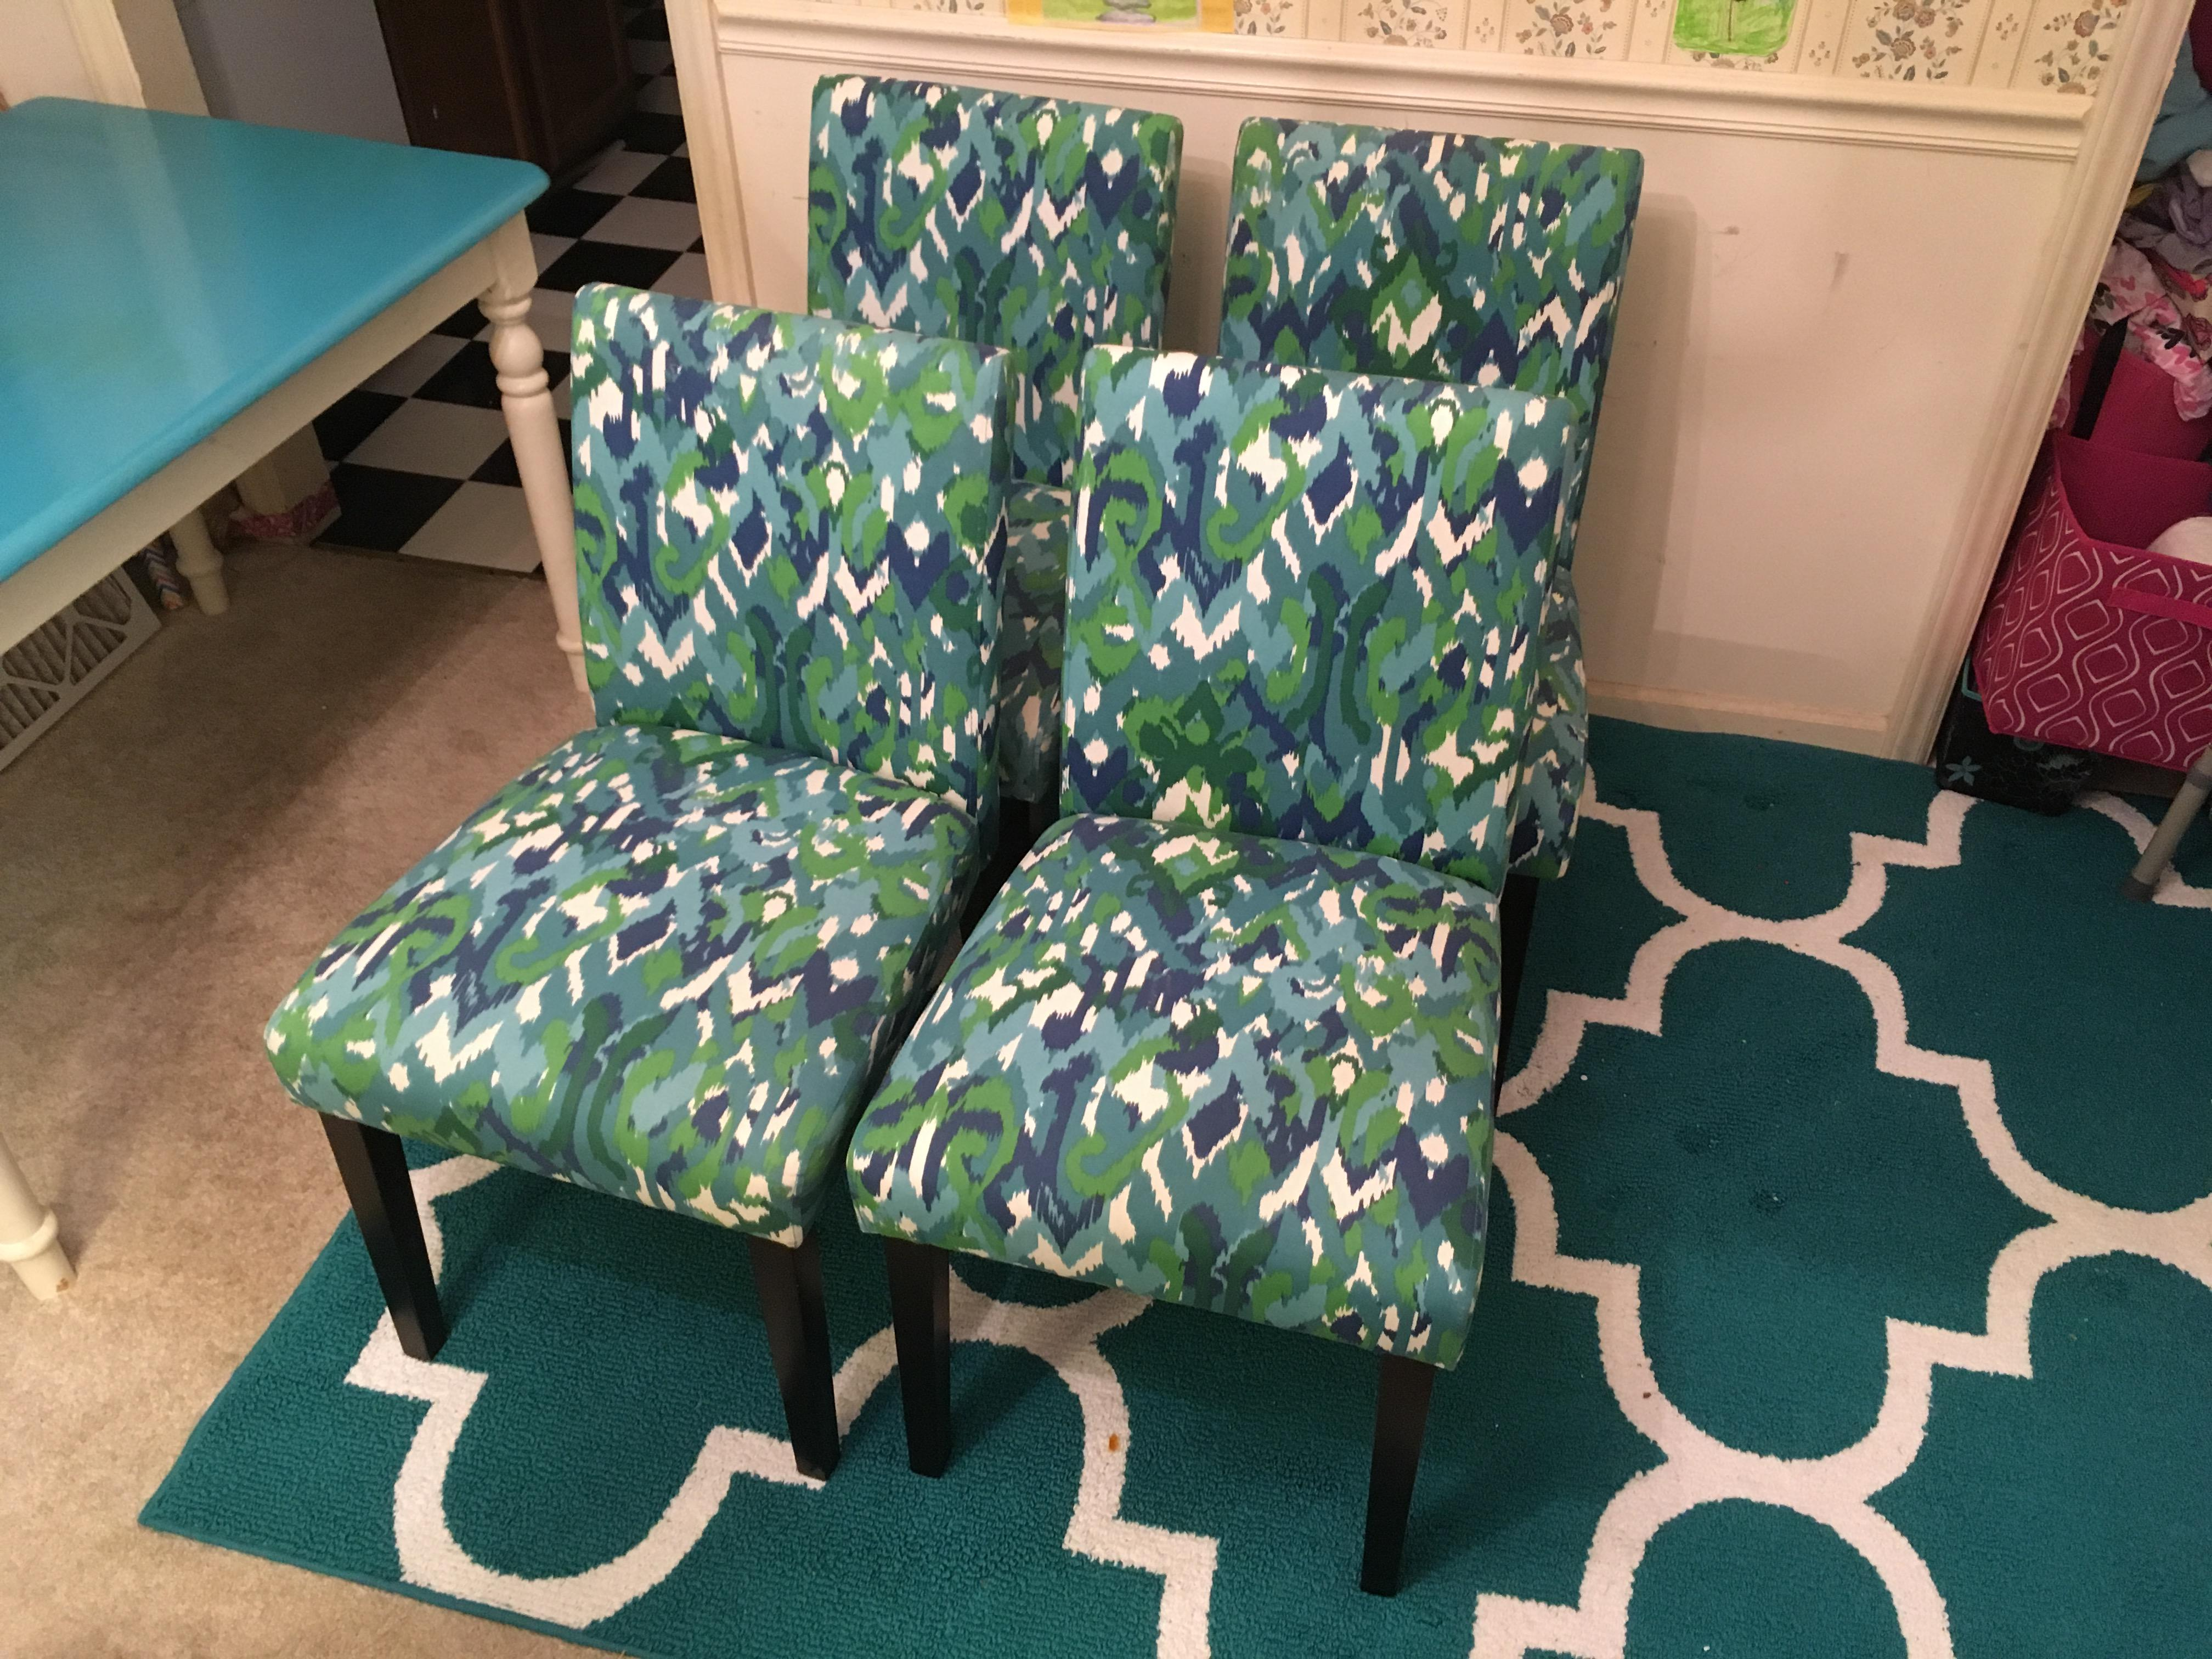 Teal Ikat Design Parsons Fabric Chairs Set of 4 Chairish : 4605ca45 833b 4899 bd7d 4a9897b78be1aspectfitampwidth640ampheight640 from www.chairish.com size 640 x 640 jpeg 68kB